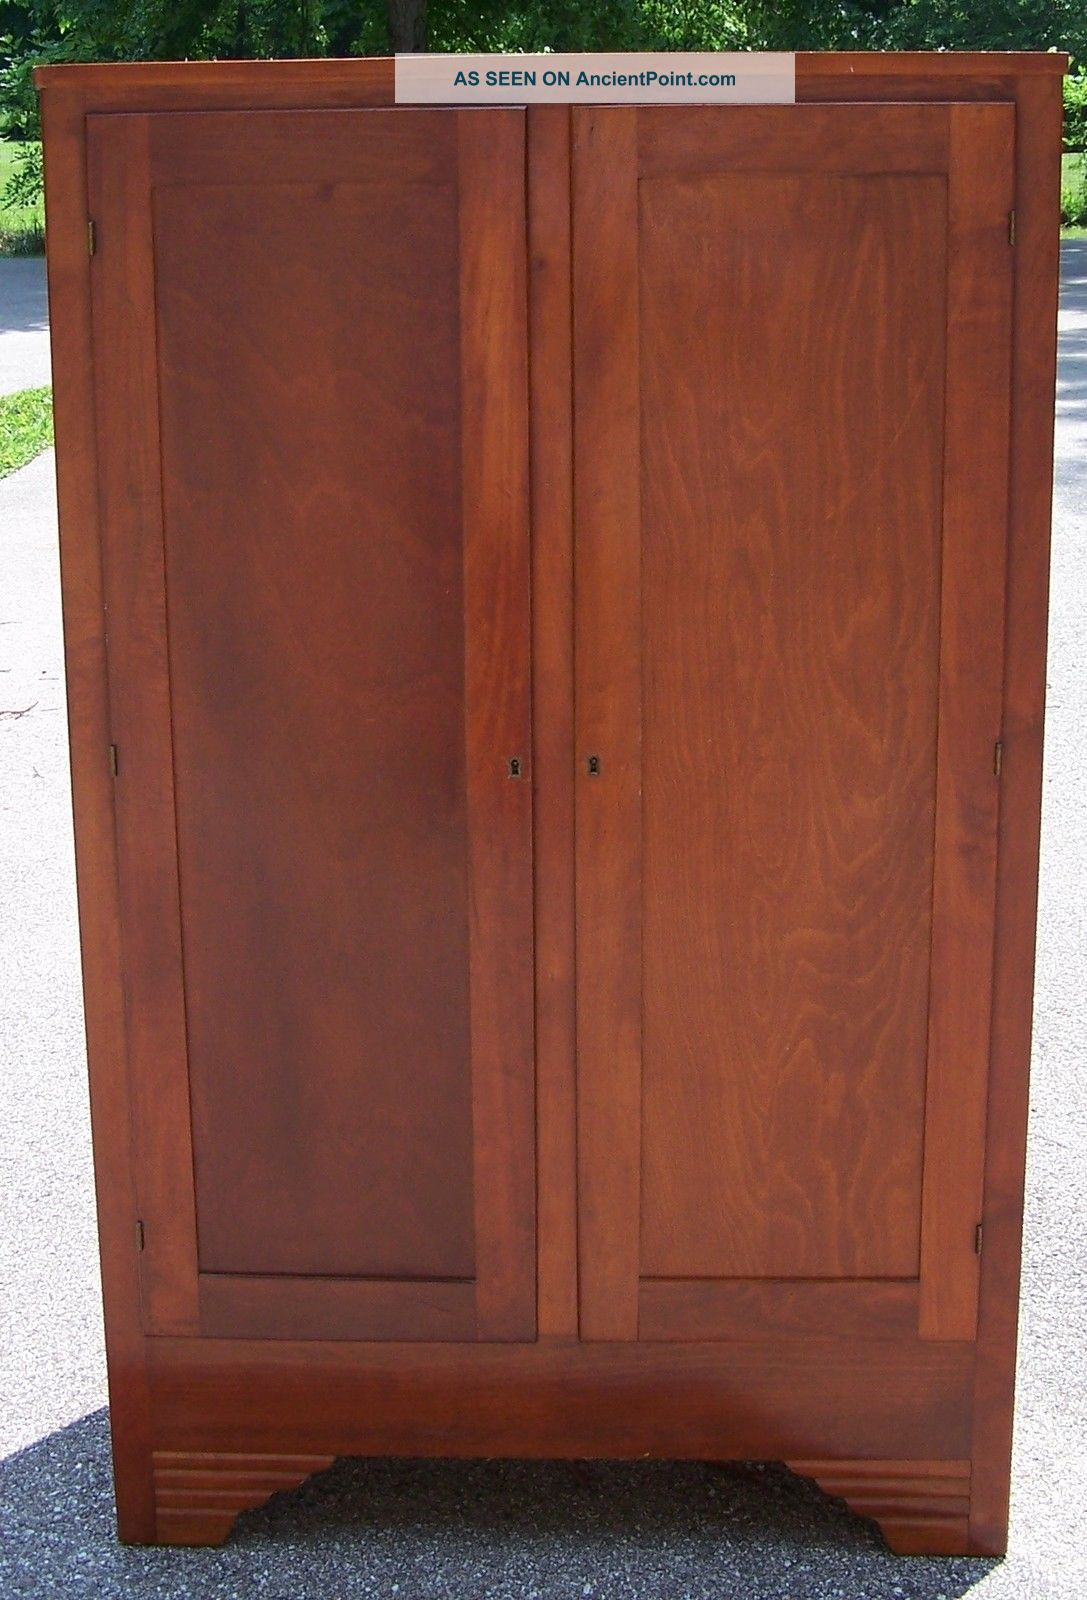 Wood Gun Cabinet With Key - It Will Lock Post-1950 photo